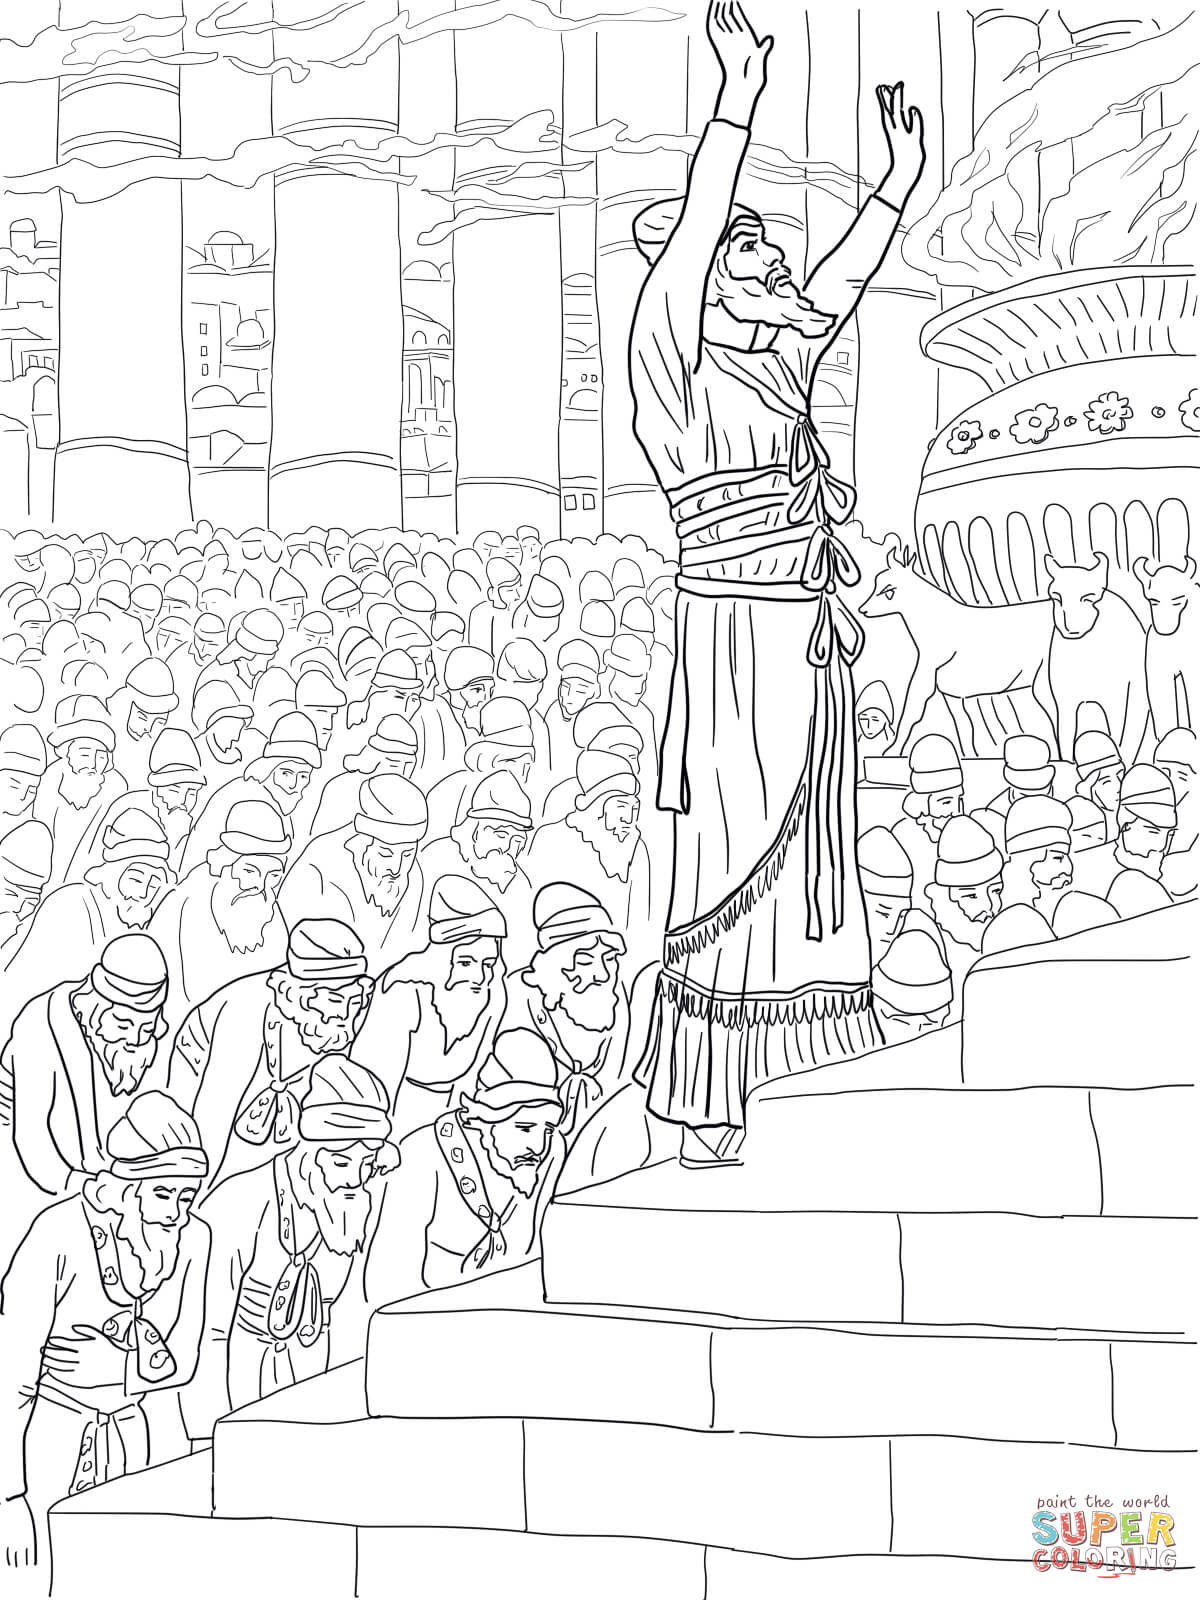 Queen Esther Coloring Page Sketch Coloring Page